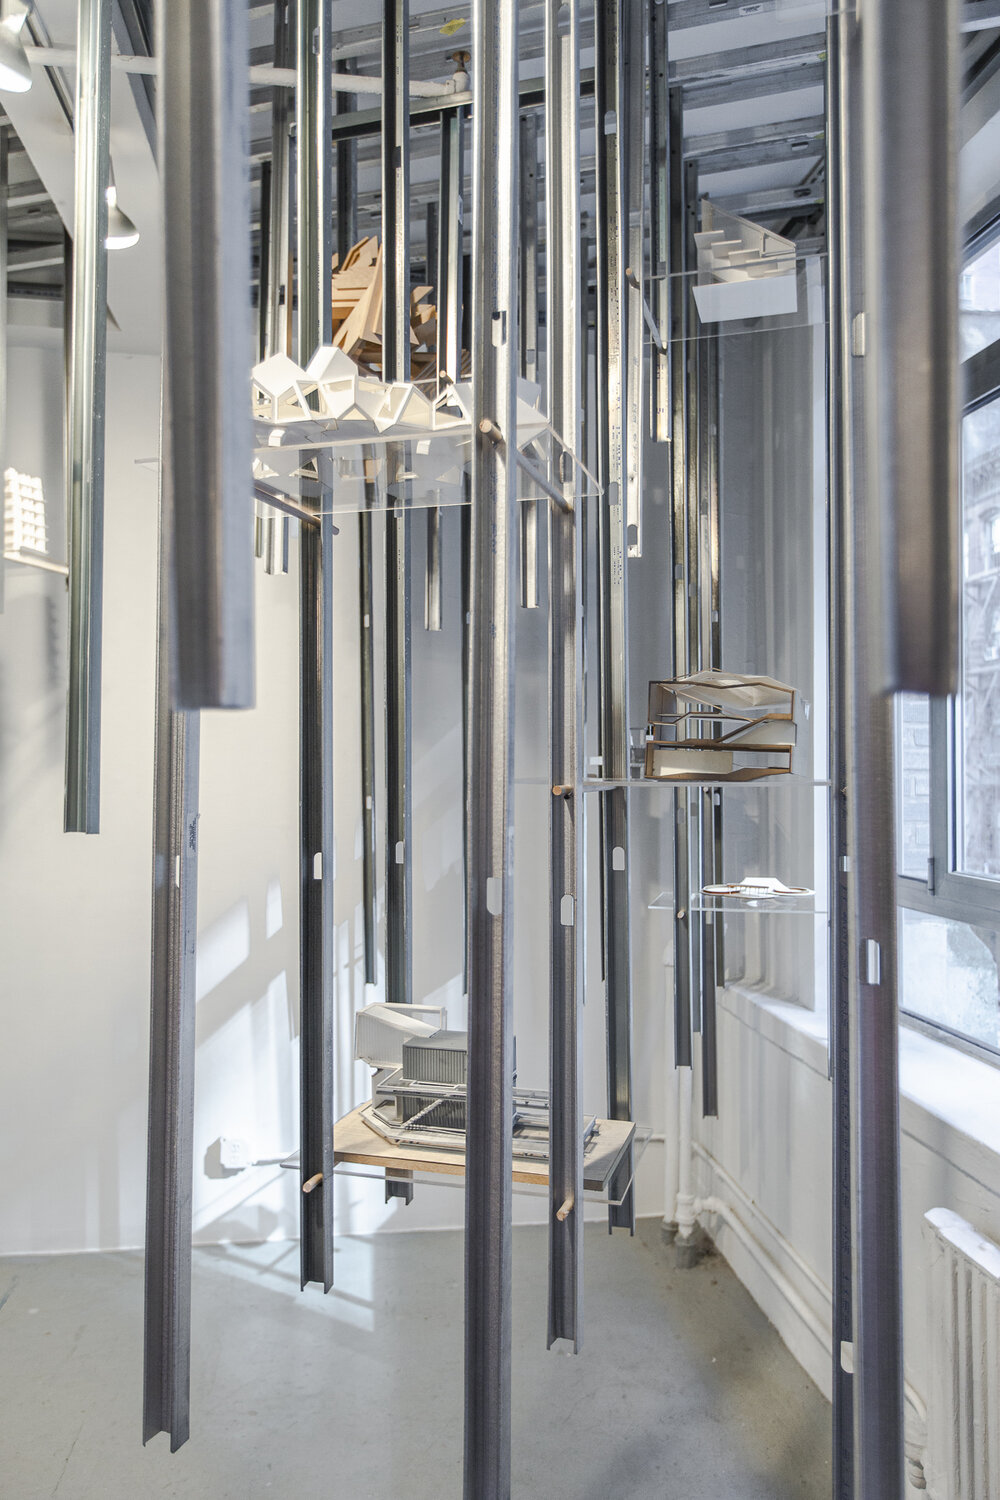 Dannielle Tegeder and Christian B. Lynch,  Utopian Ghost Model Archive , installation w. architectural models, dimensions vary, 2019.